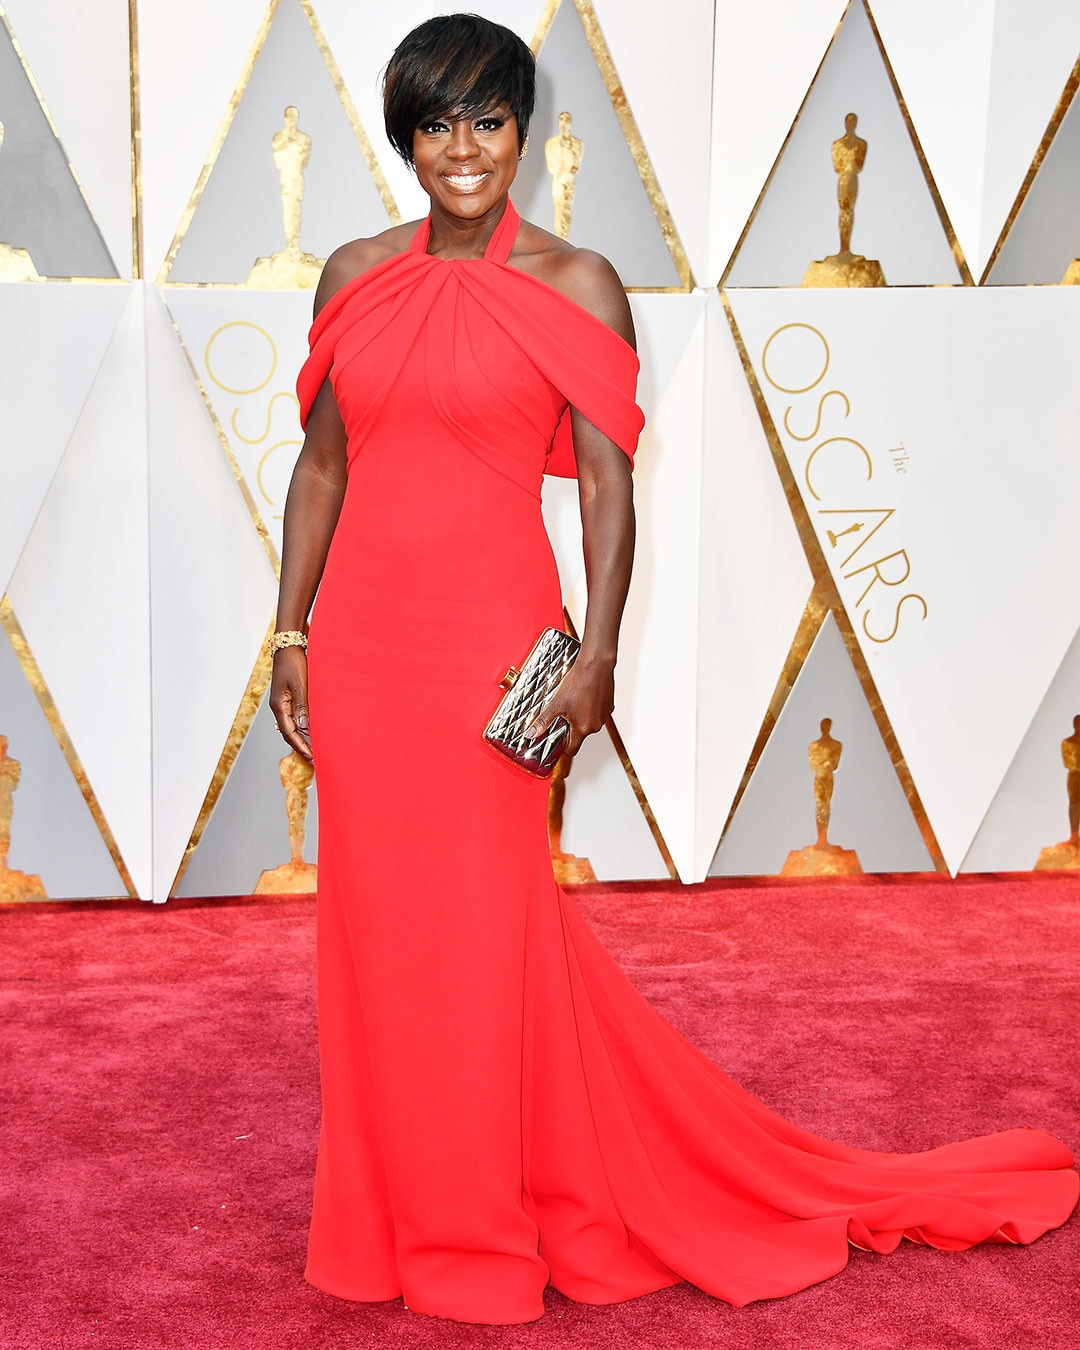 https://i1.wp.com/akns-images.eonline.com/eol_images/Entire_Site/2017126/rs_1080x1350-170226165527-1080.Viola-Davis-Oscars-Hollywood.kg.022617.jpg